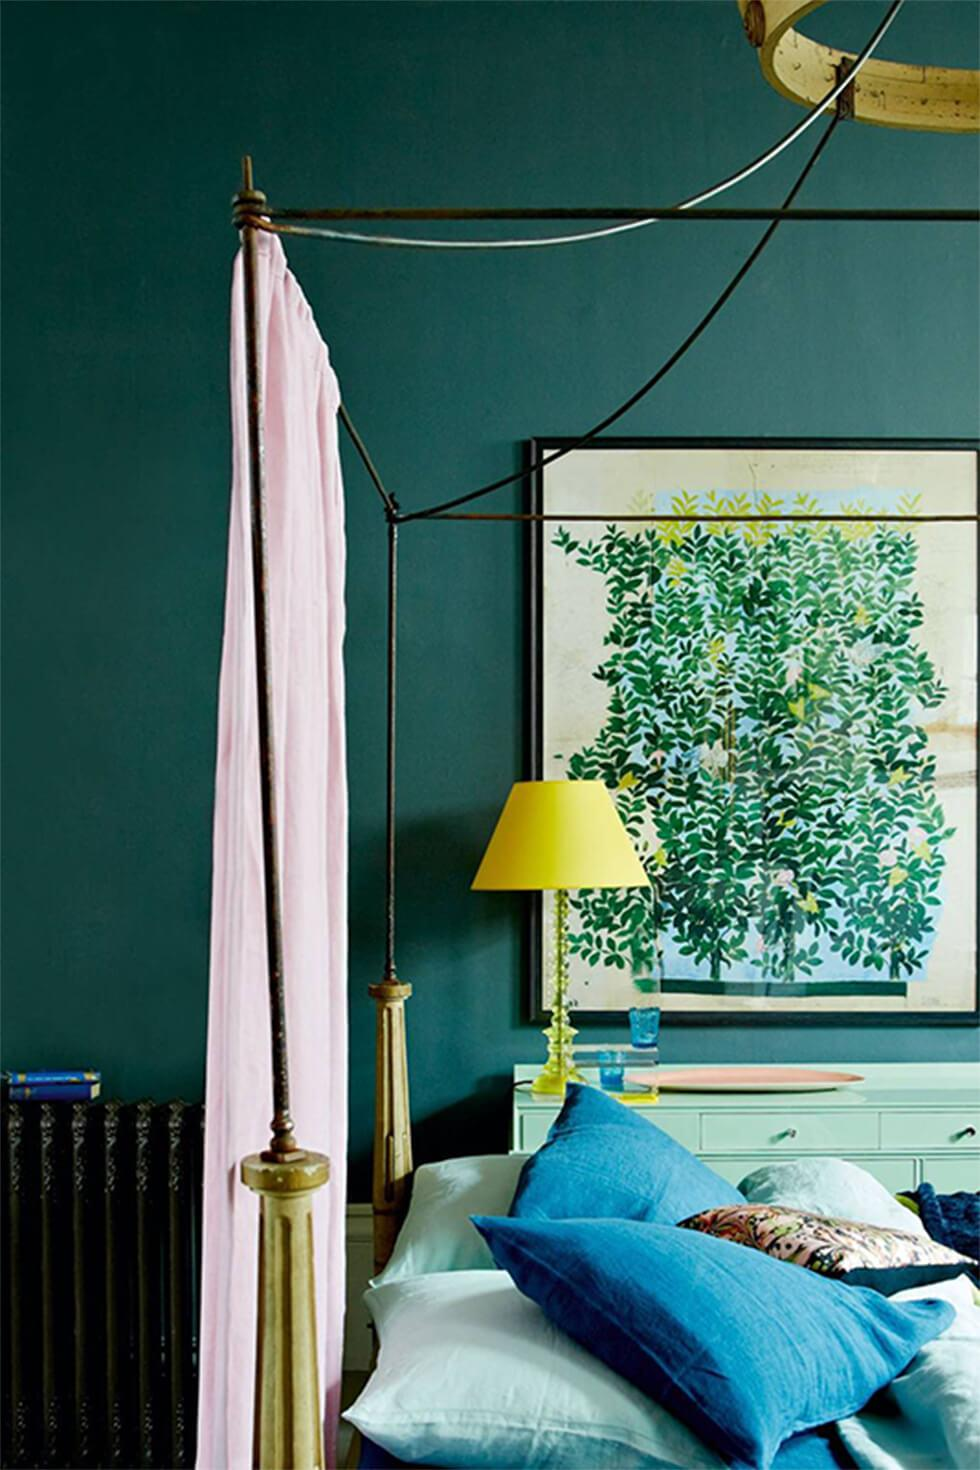 Eclectic teal bedroom with a poster bed, green art, and pink drapes.